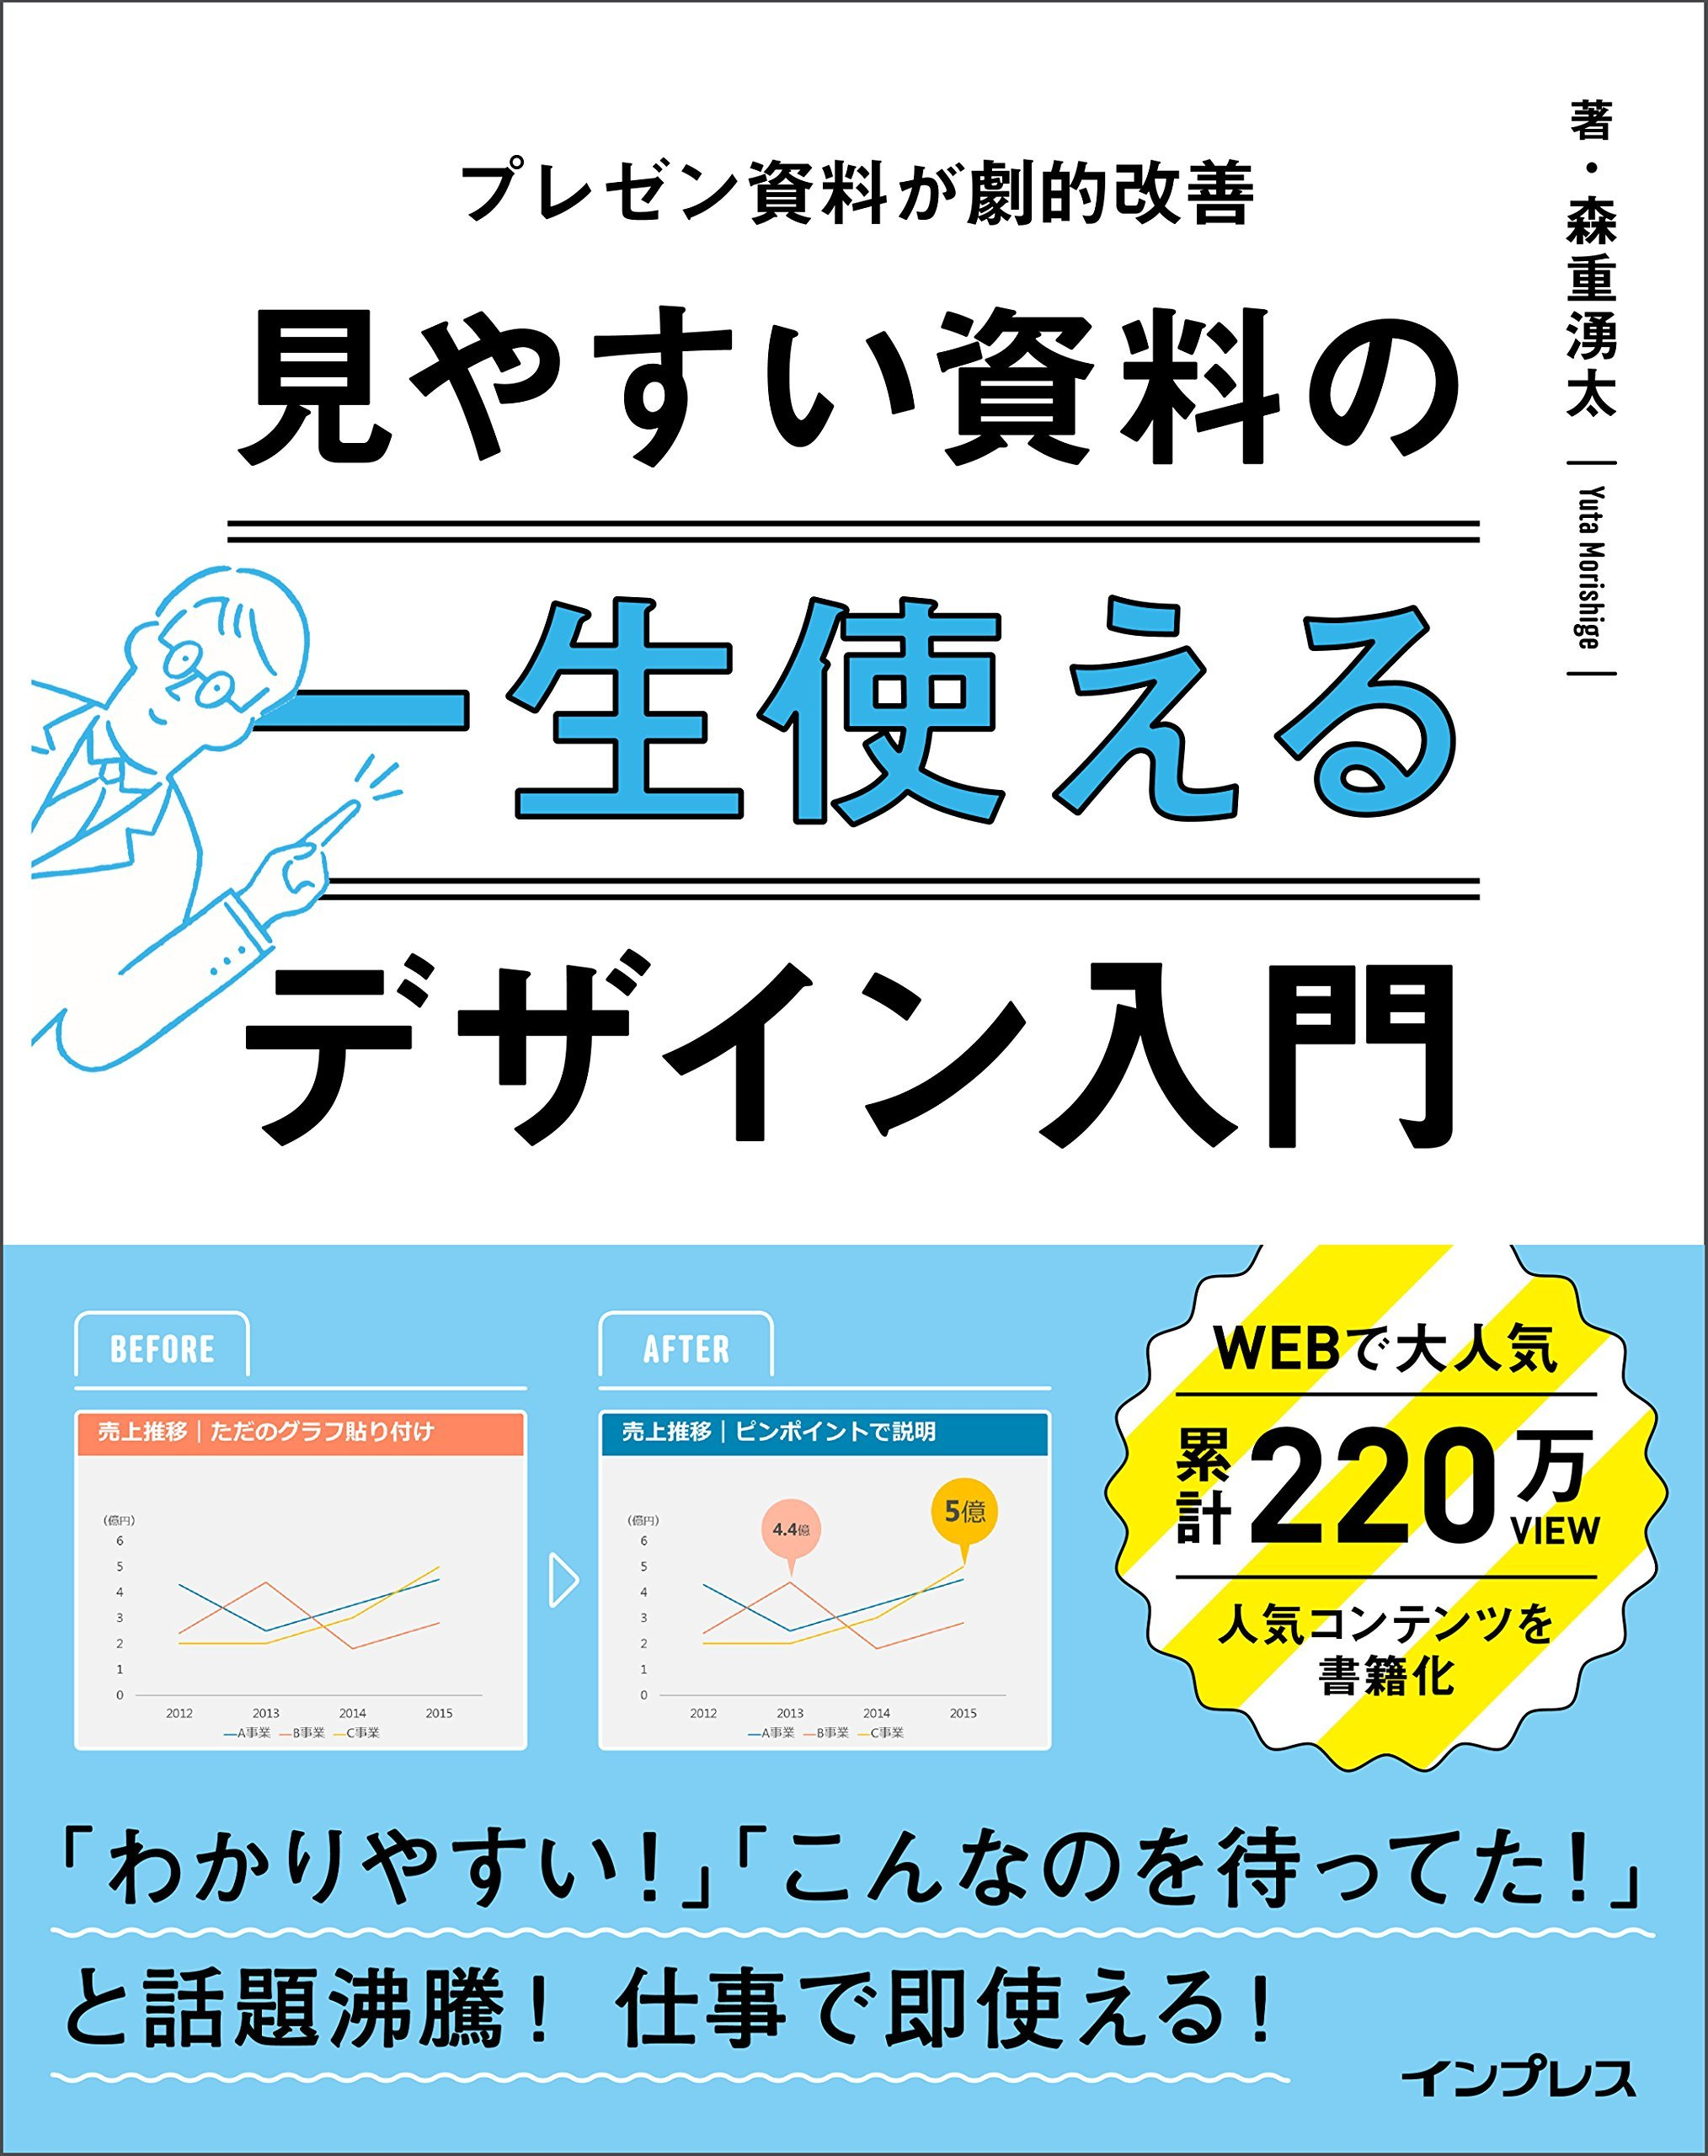 https://www.amazon.co.jp/dp/484433963X/?coliid=I284EE9LY026KR&colid=M2ZSB45B3CBM&psc=0&ref_=lv_ov_lig_dp_it